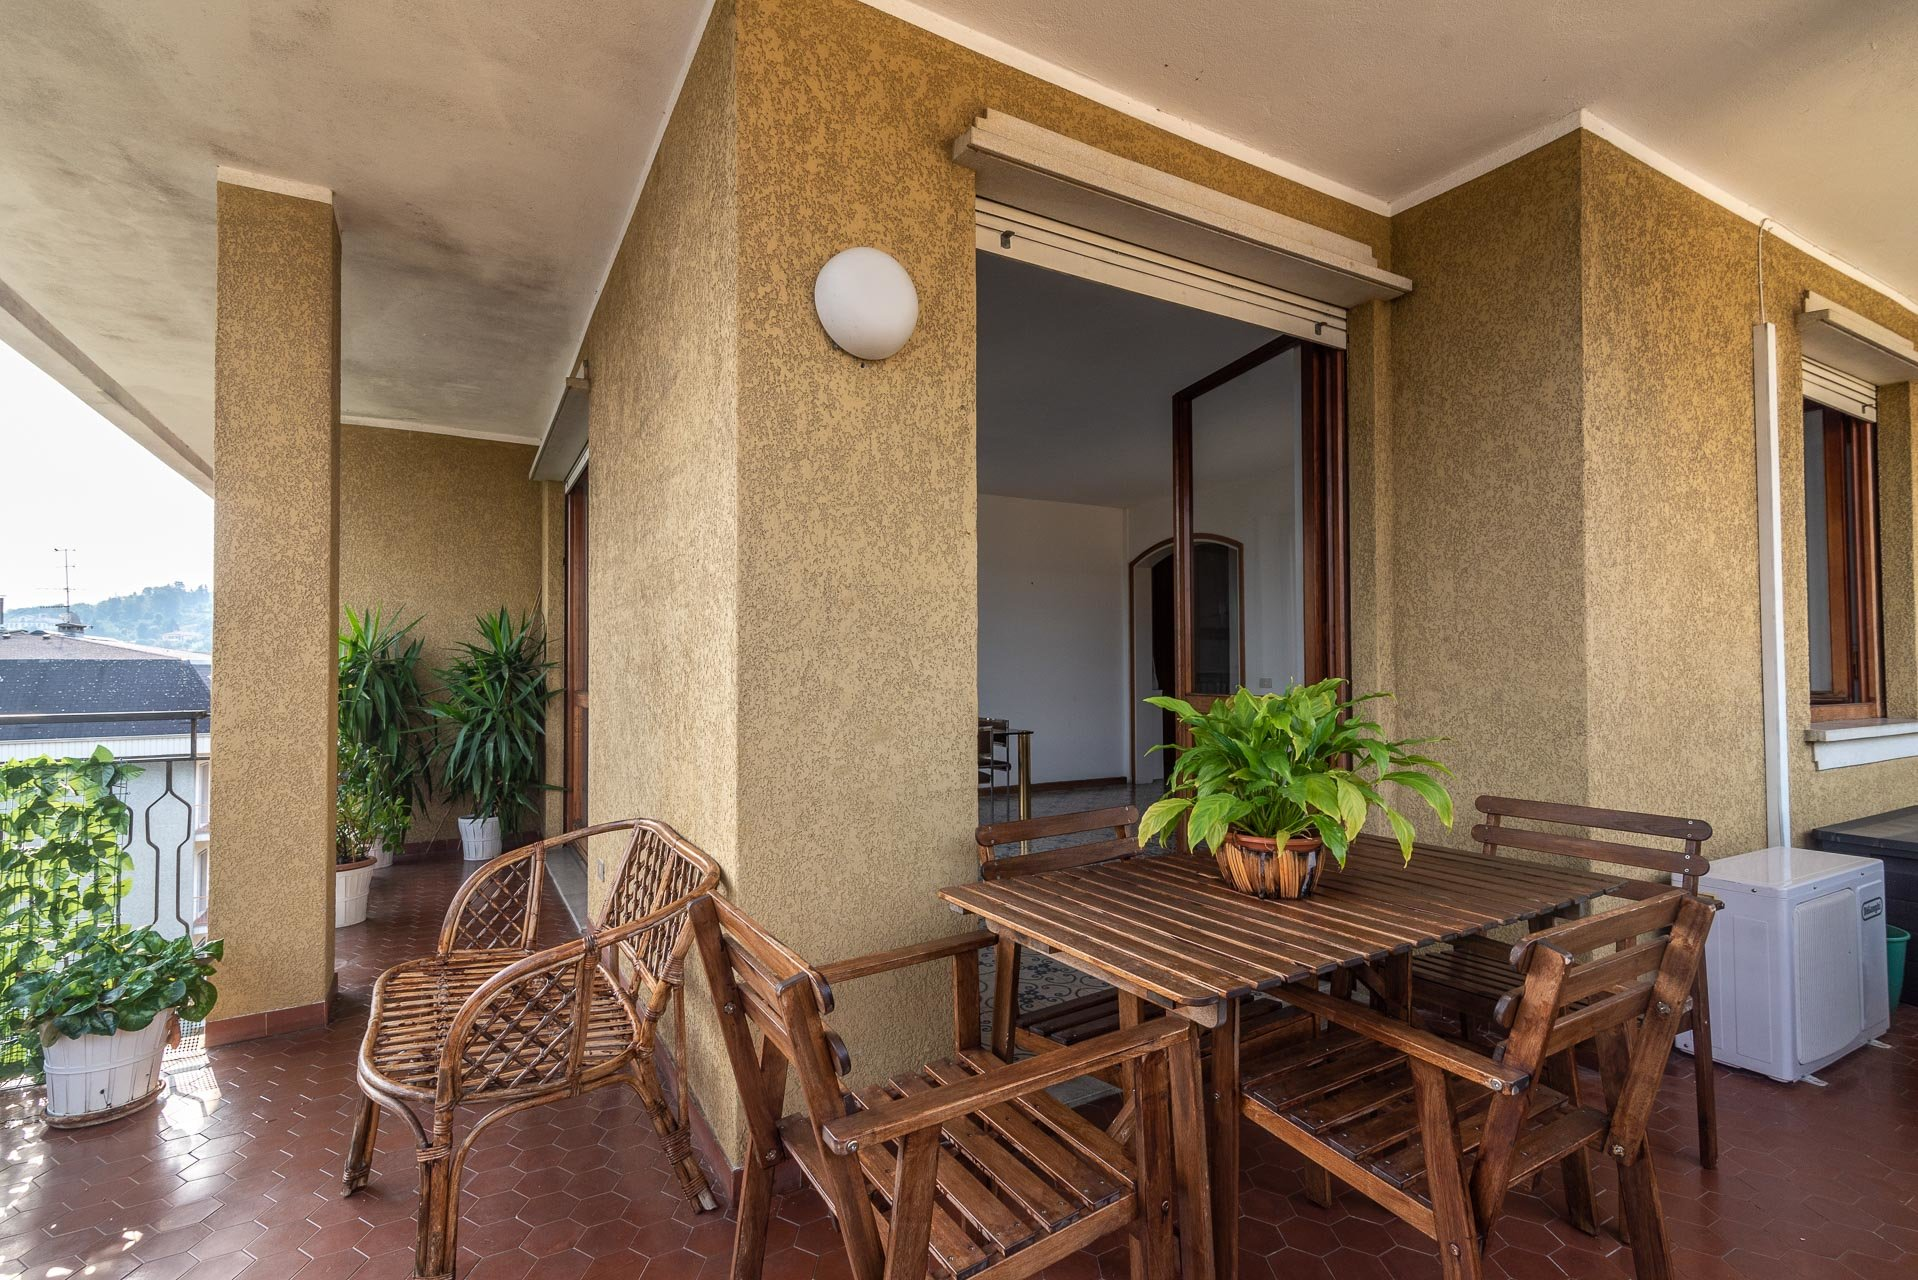 Apartment for rent in Stresa - terrace